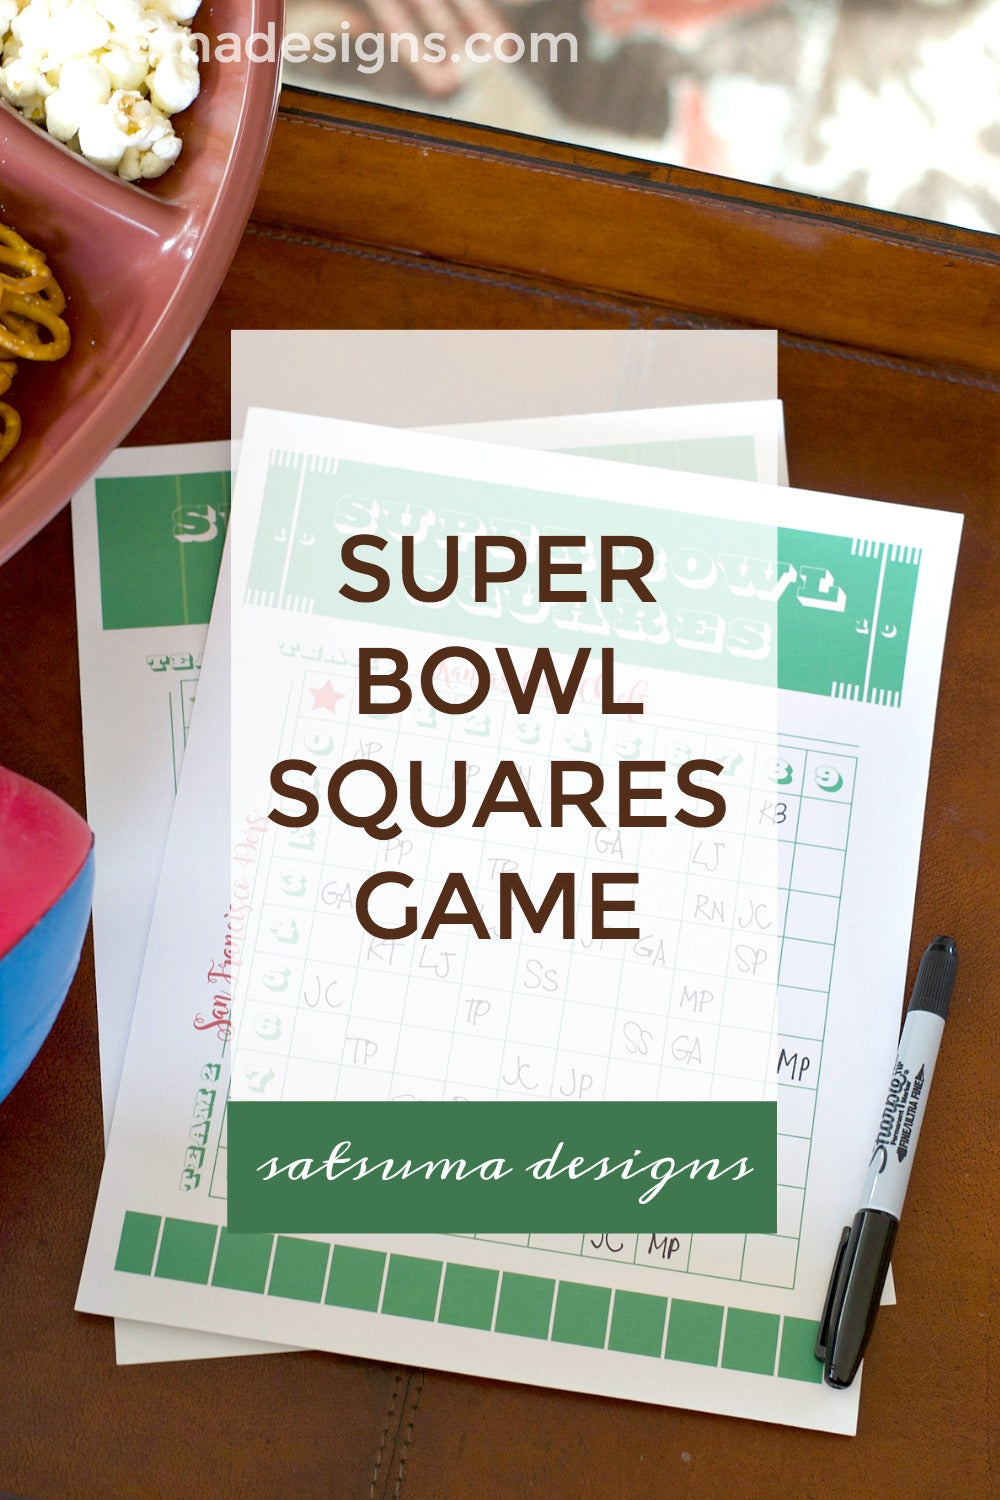 Super bowl squares game printable for your super bowl party. This post has printables for Super Bowl 54 and generic version for any super bowl in the future. Enjoy! #football #footballsquares #printable #superbowl #superbowl54 #gameday #satsumadesigns